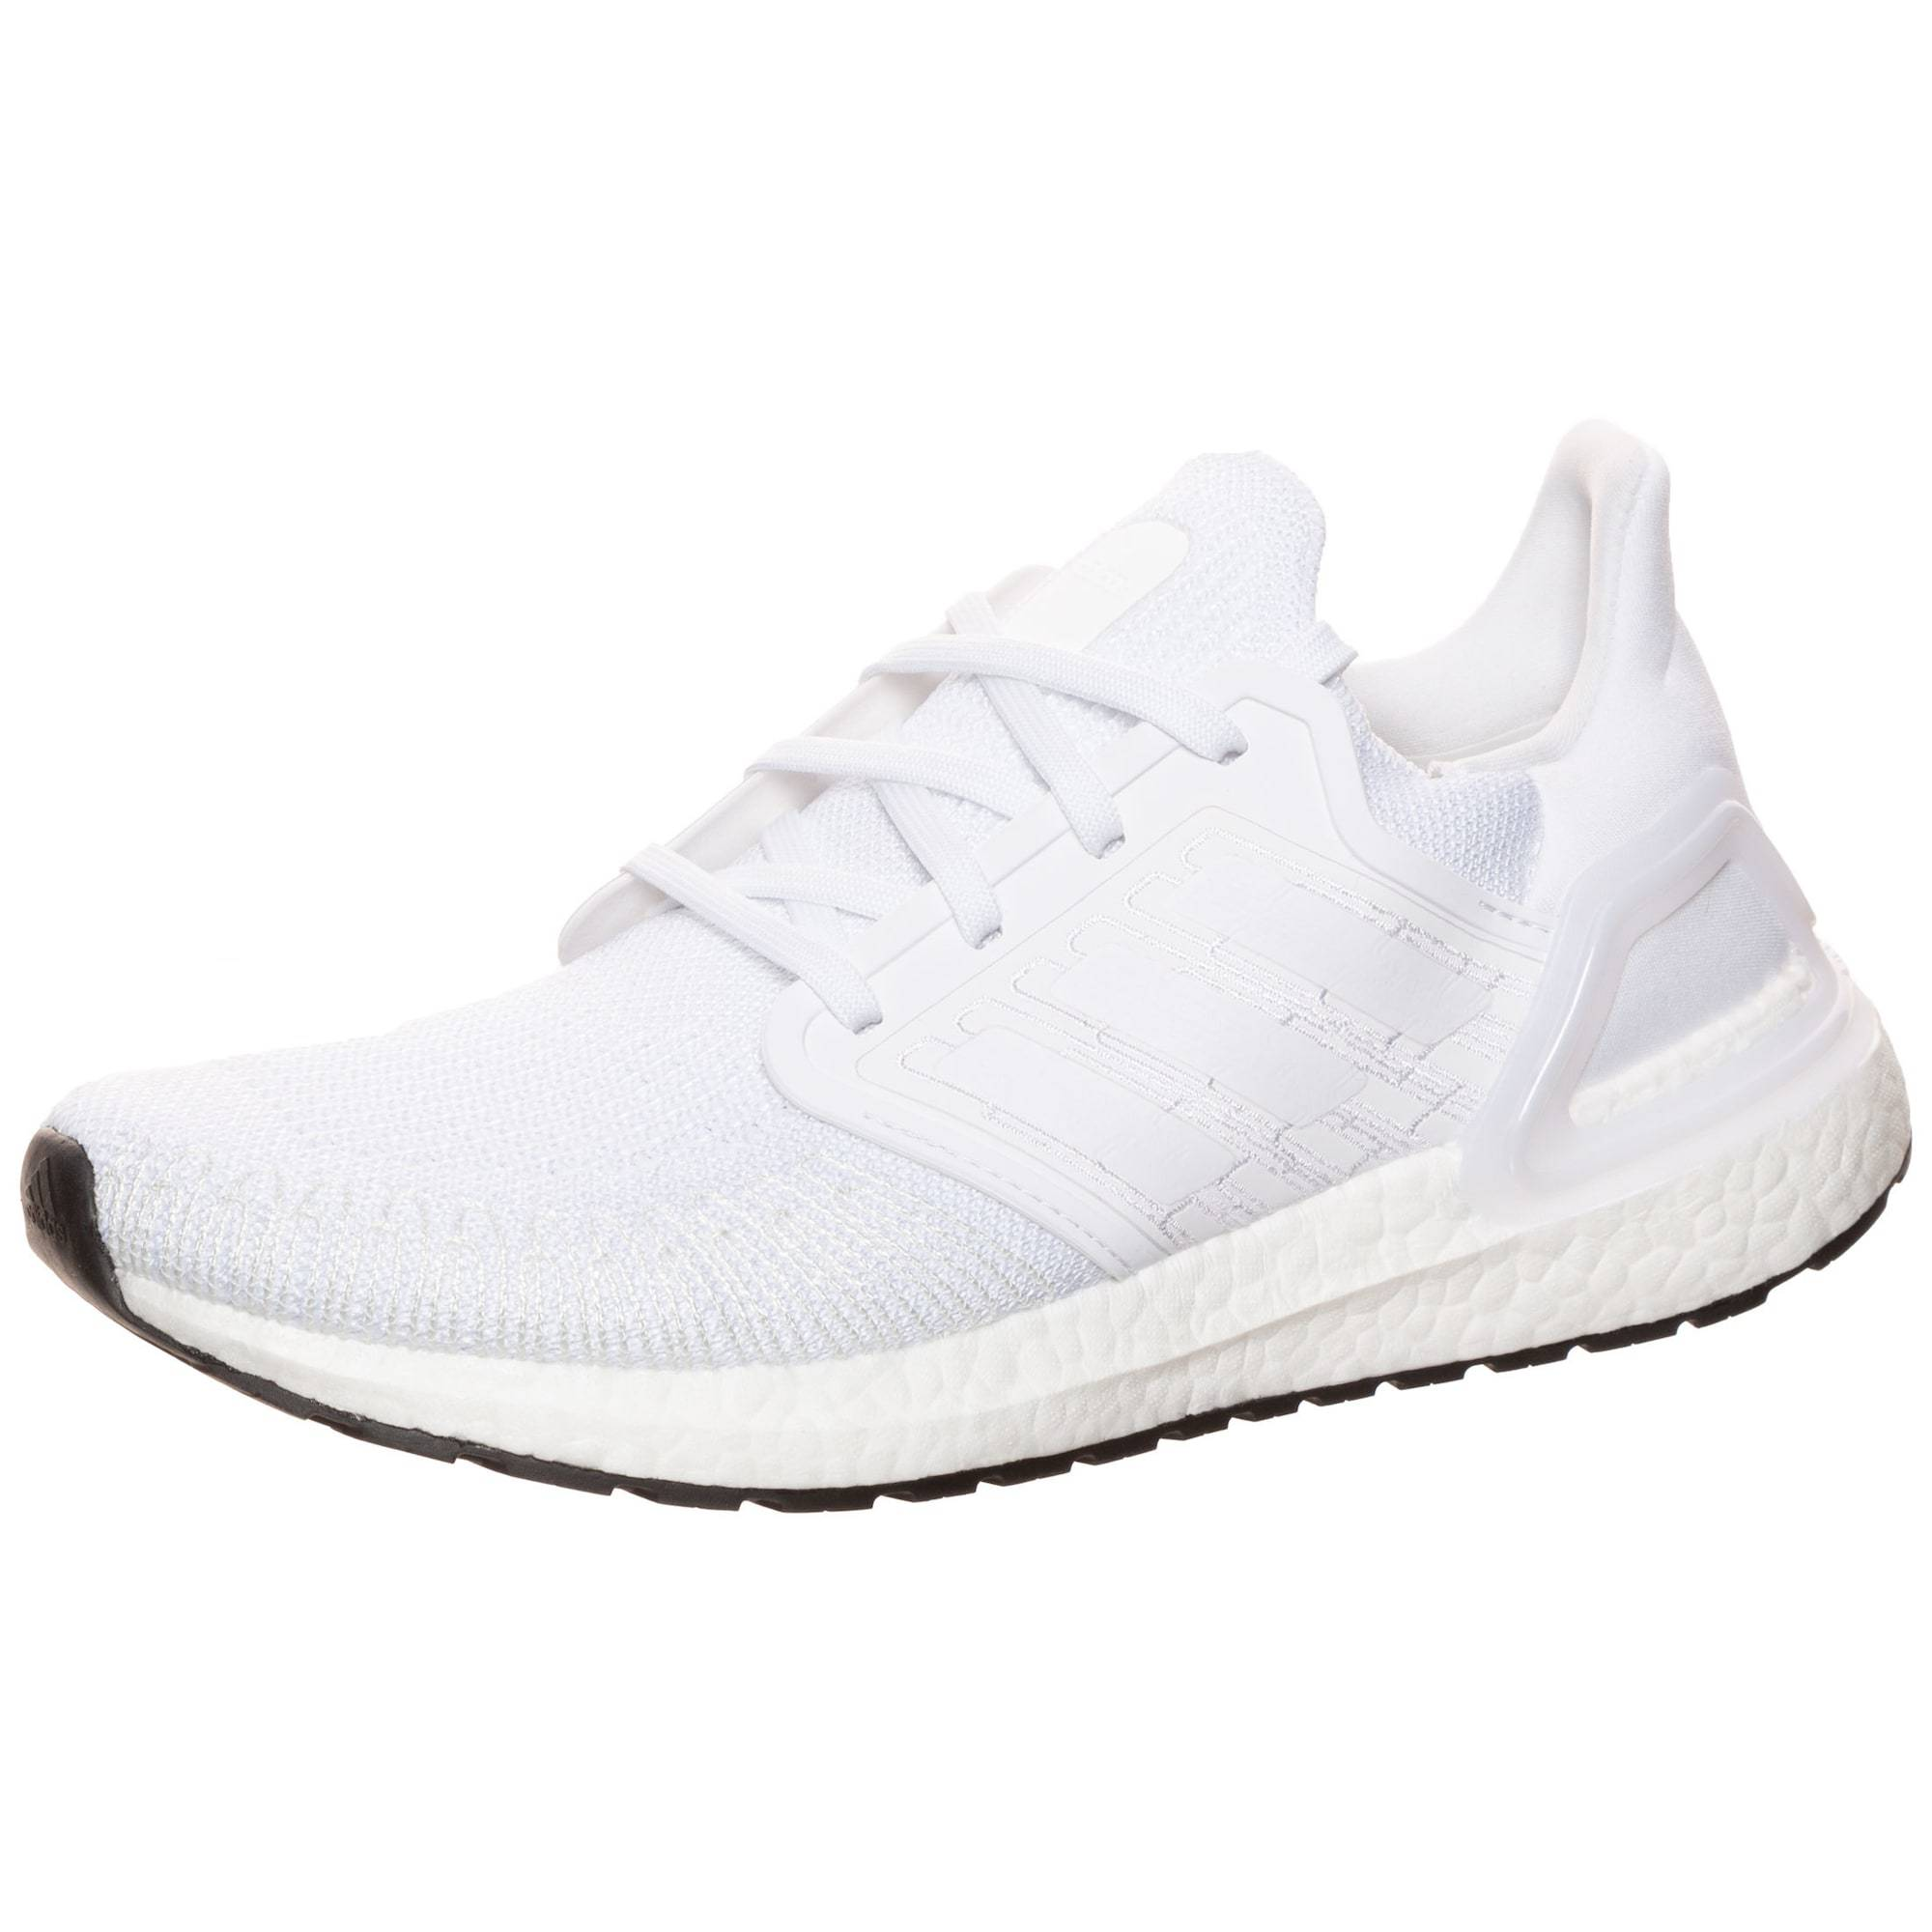 ADIDAS PERFORMANCE Chaussure de course 'ULTRABOOST 20 W'  - Blanc - Taille: 8.5 - female